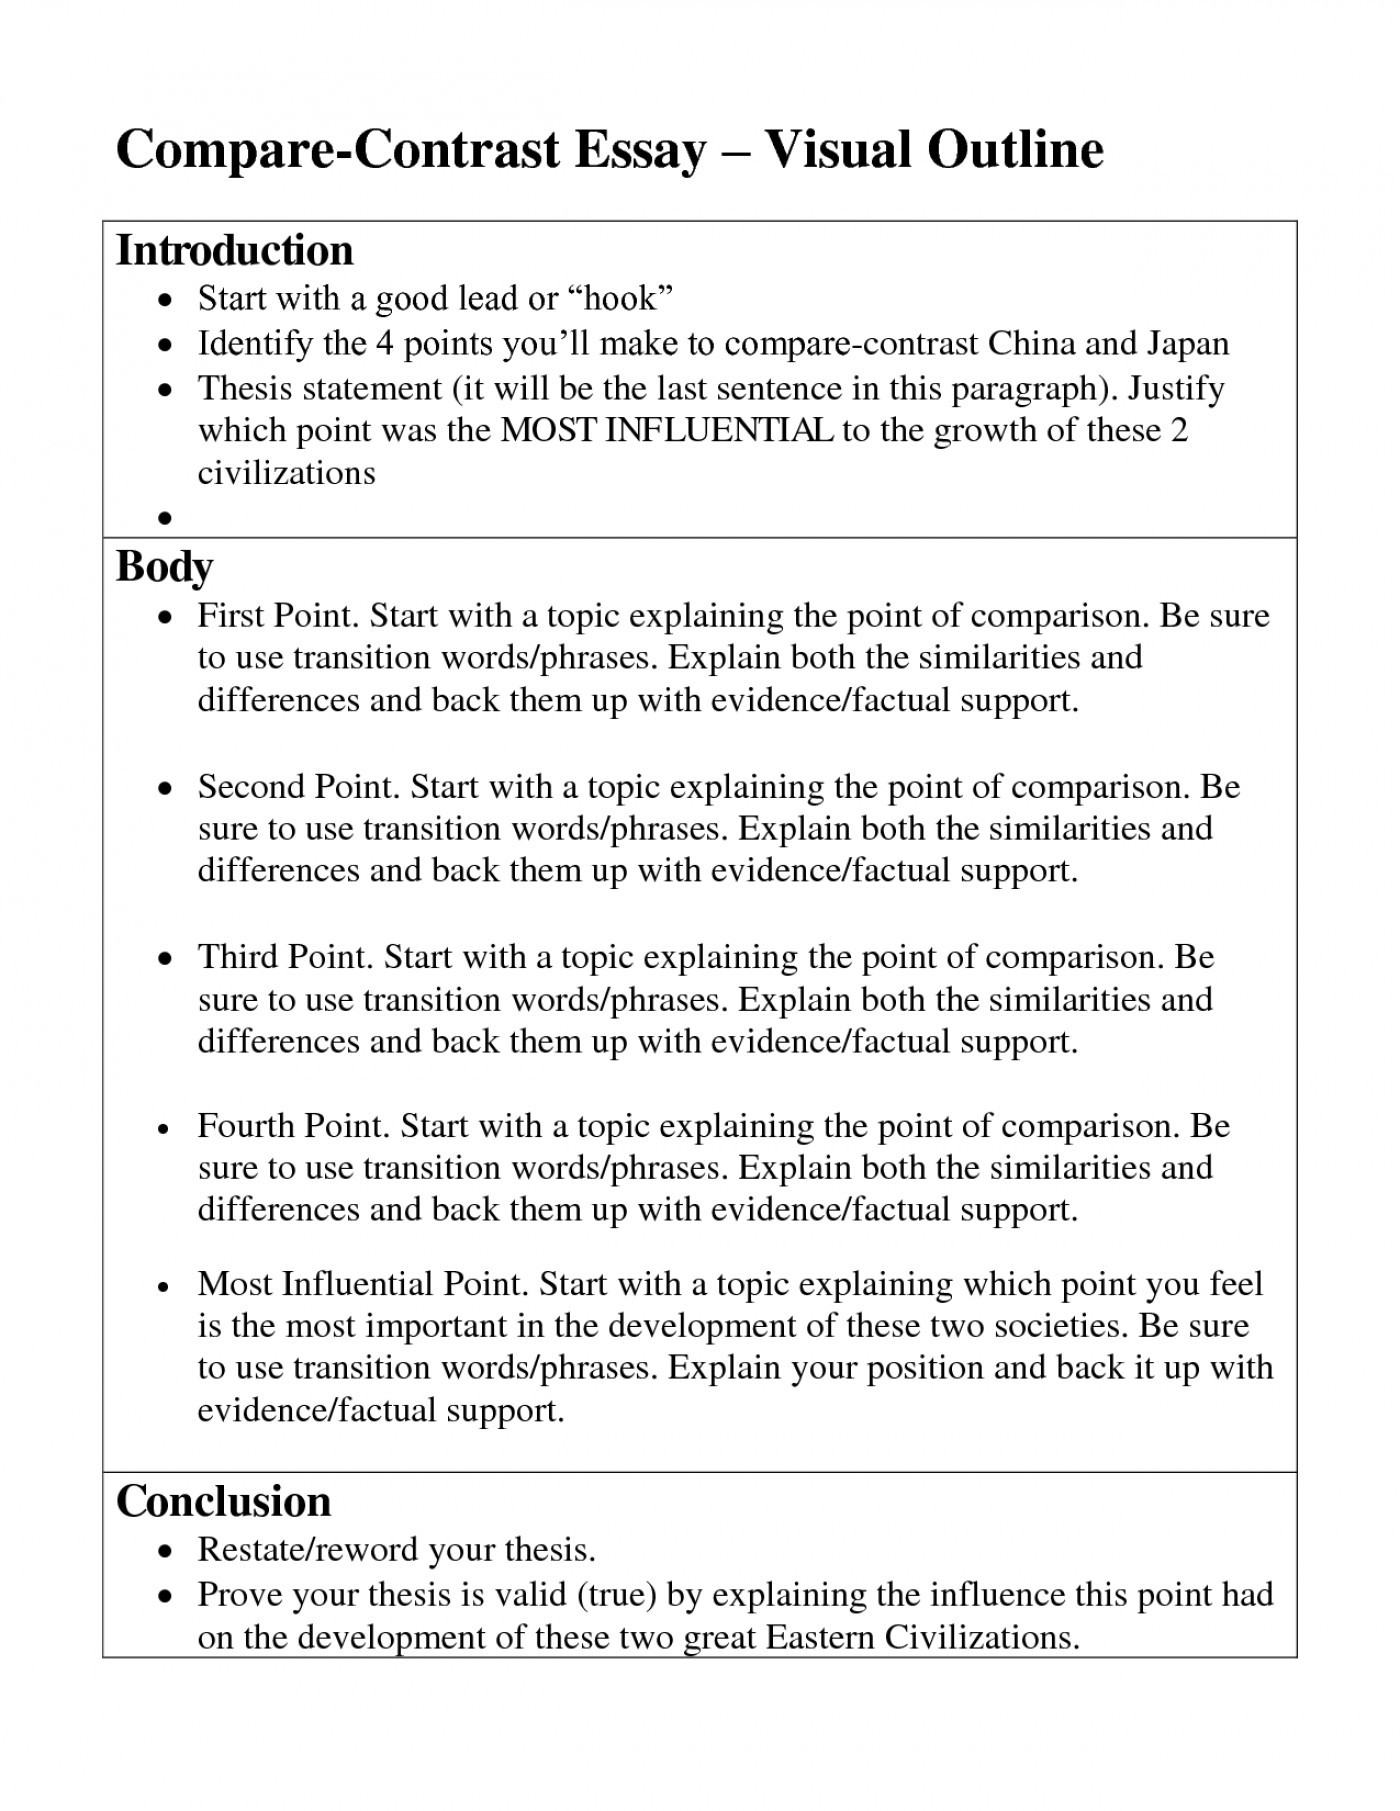 008 How To Write Researchs Best Research Papers A Paper - Pdf (2015) Conclusion An Introduction And 1400